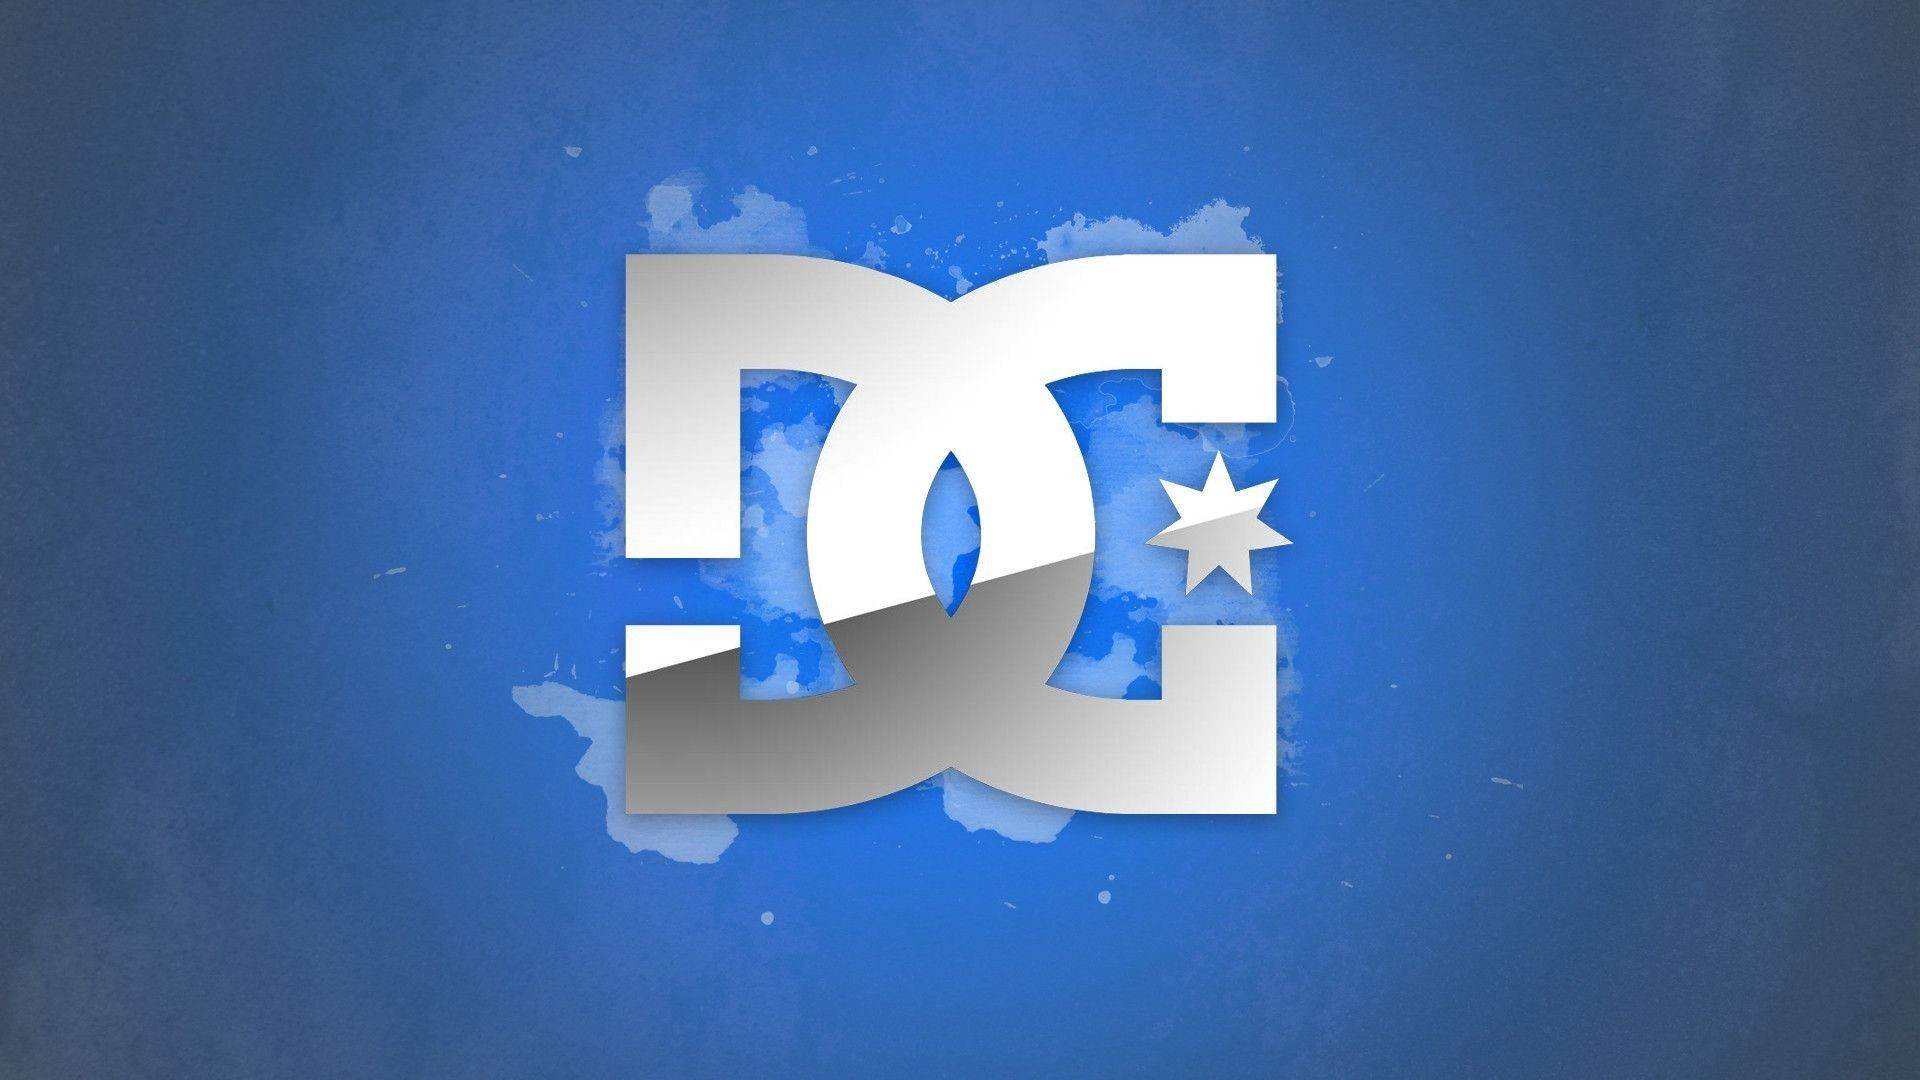 1920x1080 dc shoes logo desktop background